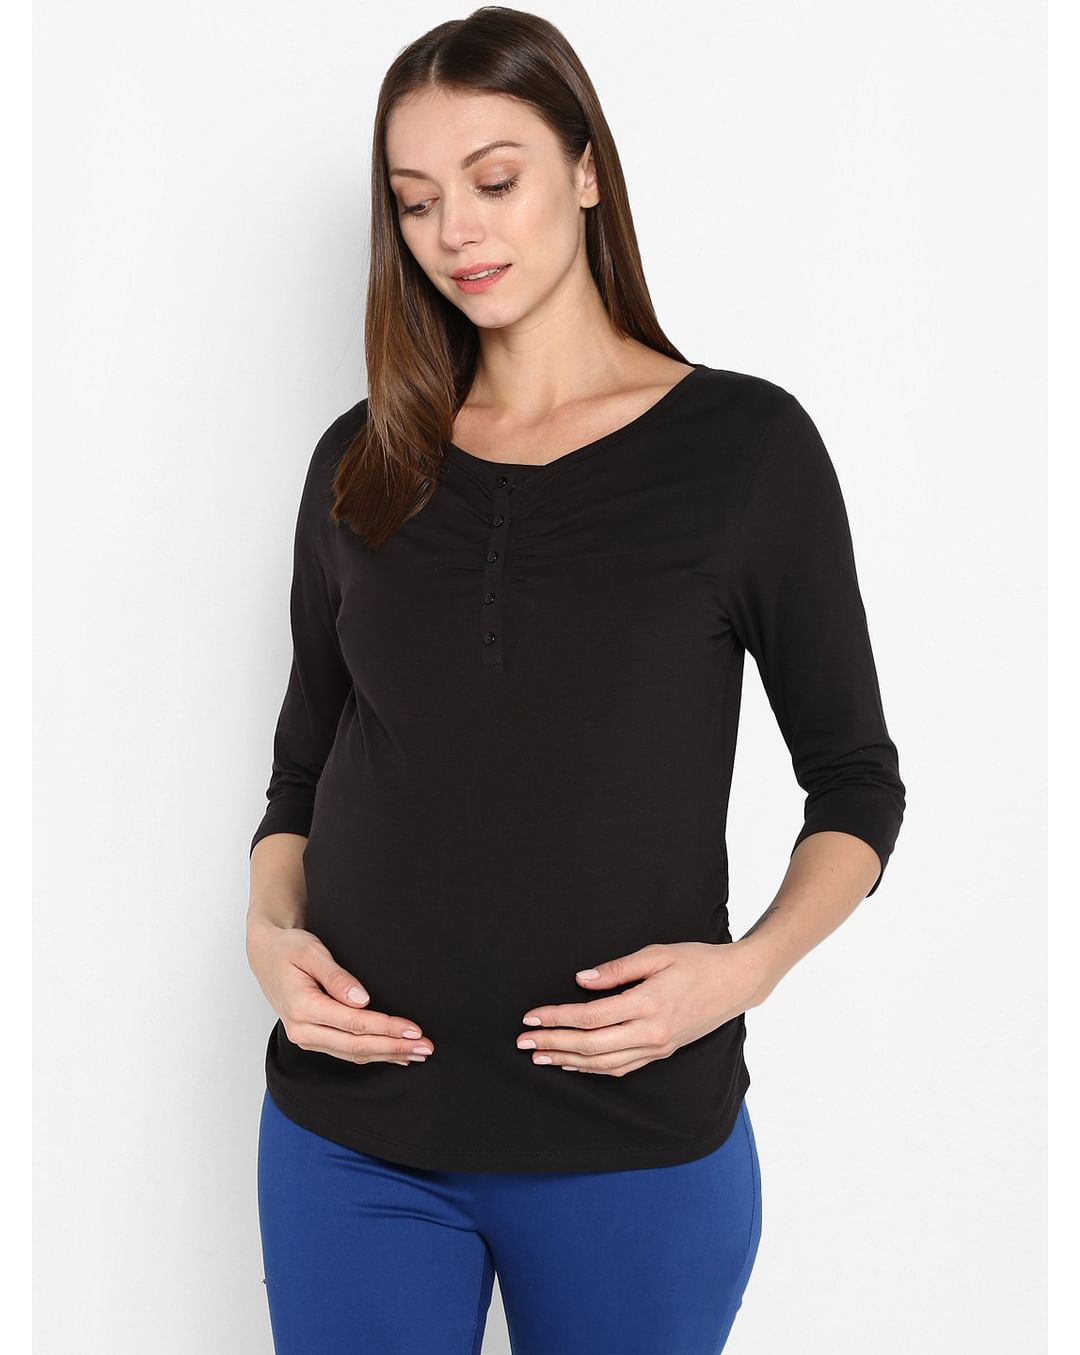 Mothercare | Momsoon women maternity three-fourth sleeves top- Black